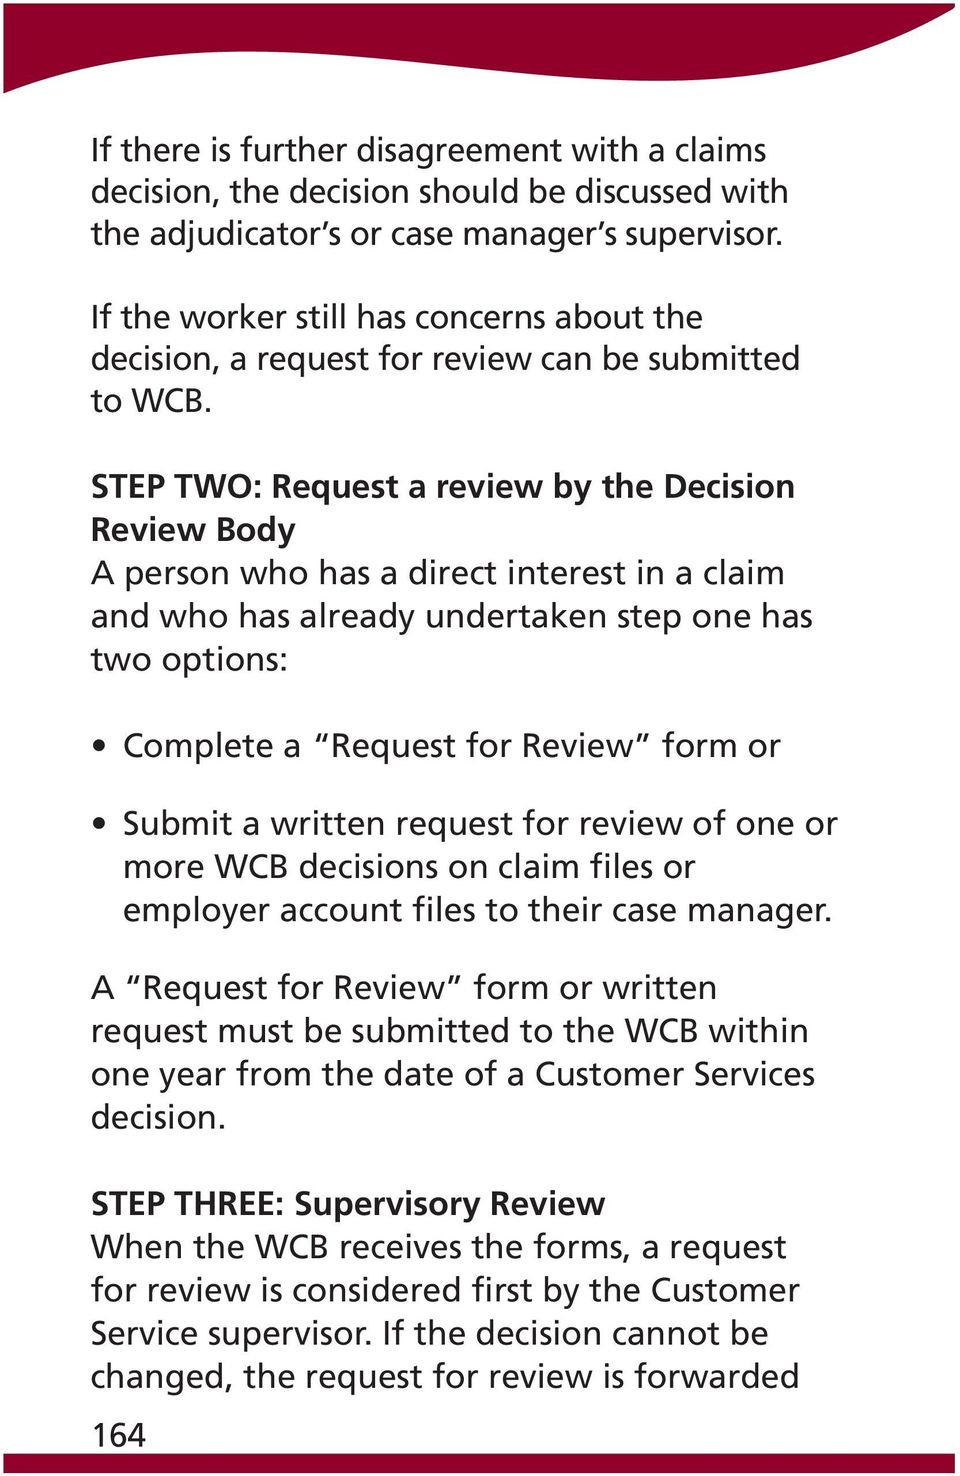 STEP TWO: Request a review by the Decision Review Body A person who has a direct interest in a claim and who has already undertaken step one has two options: Complete a Request for Review form or